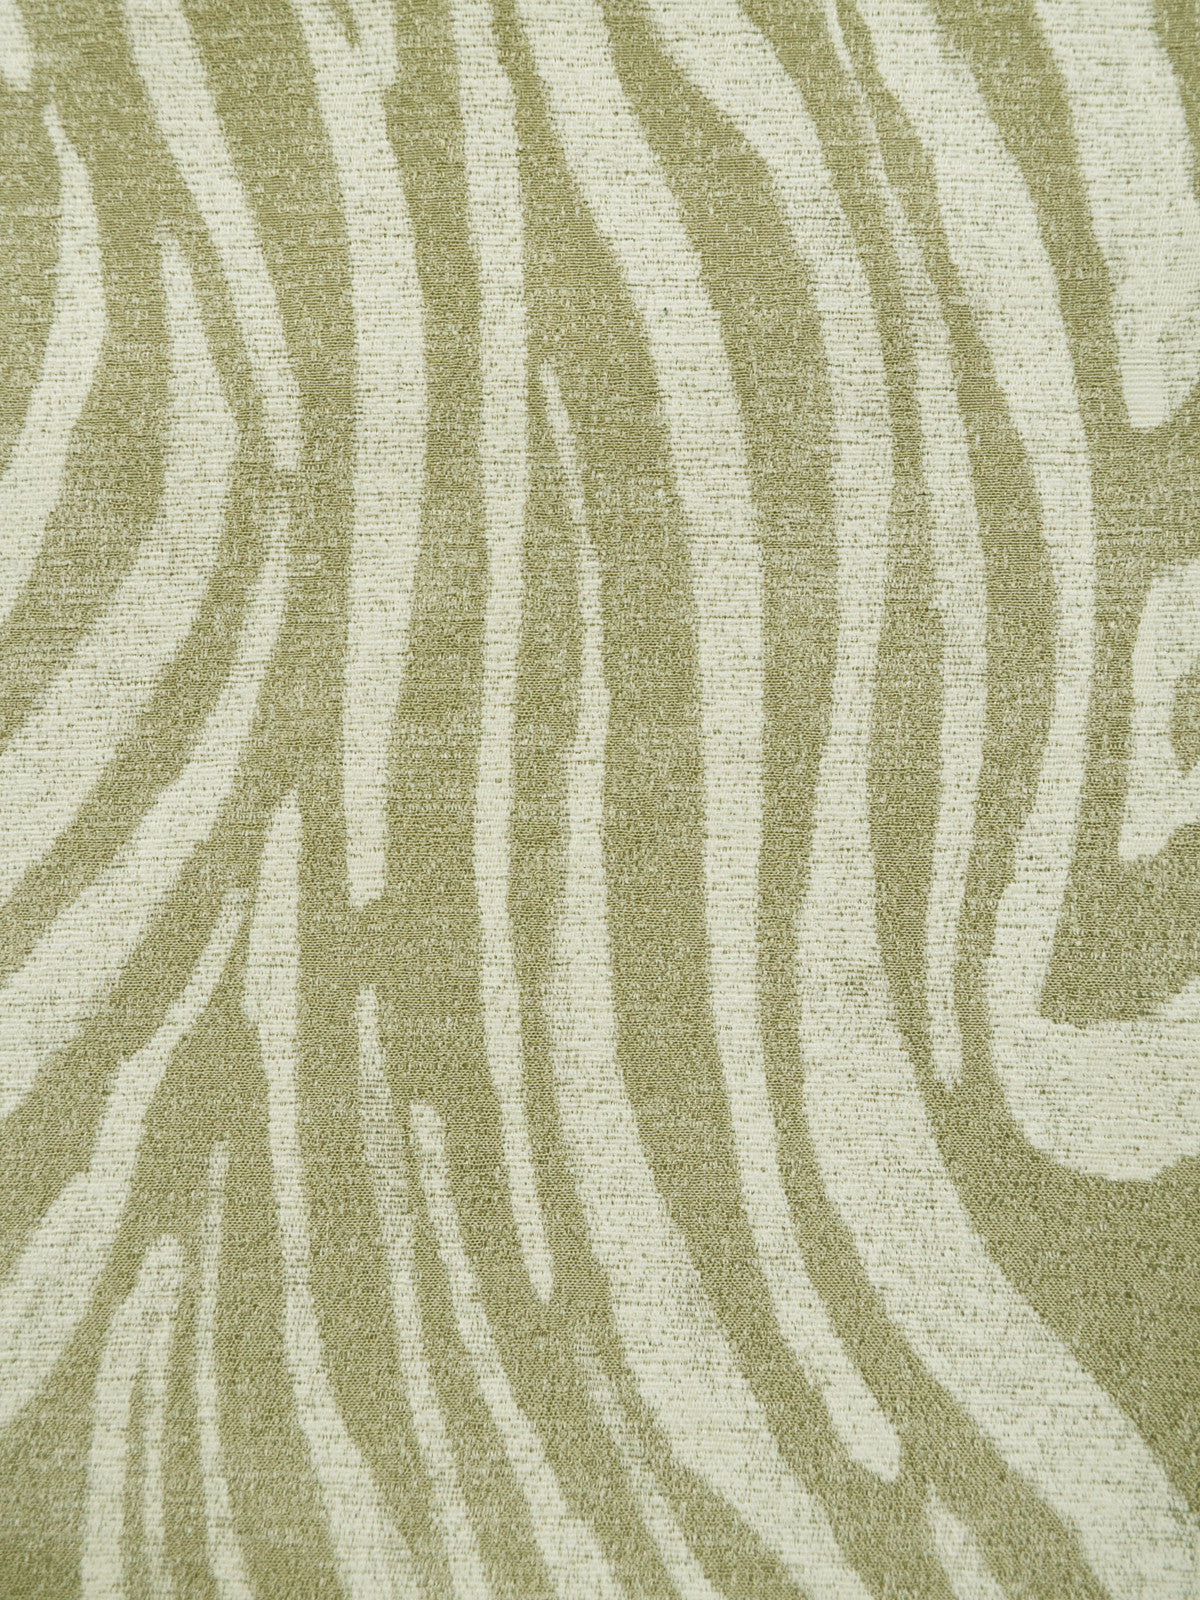 neutral animal print, neutral zebra print, neutral designer fabric